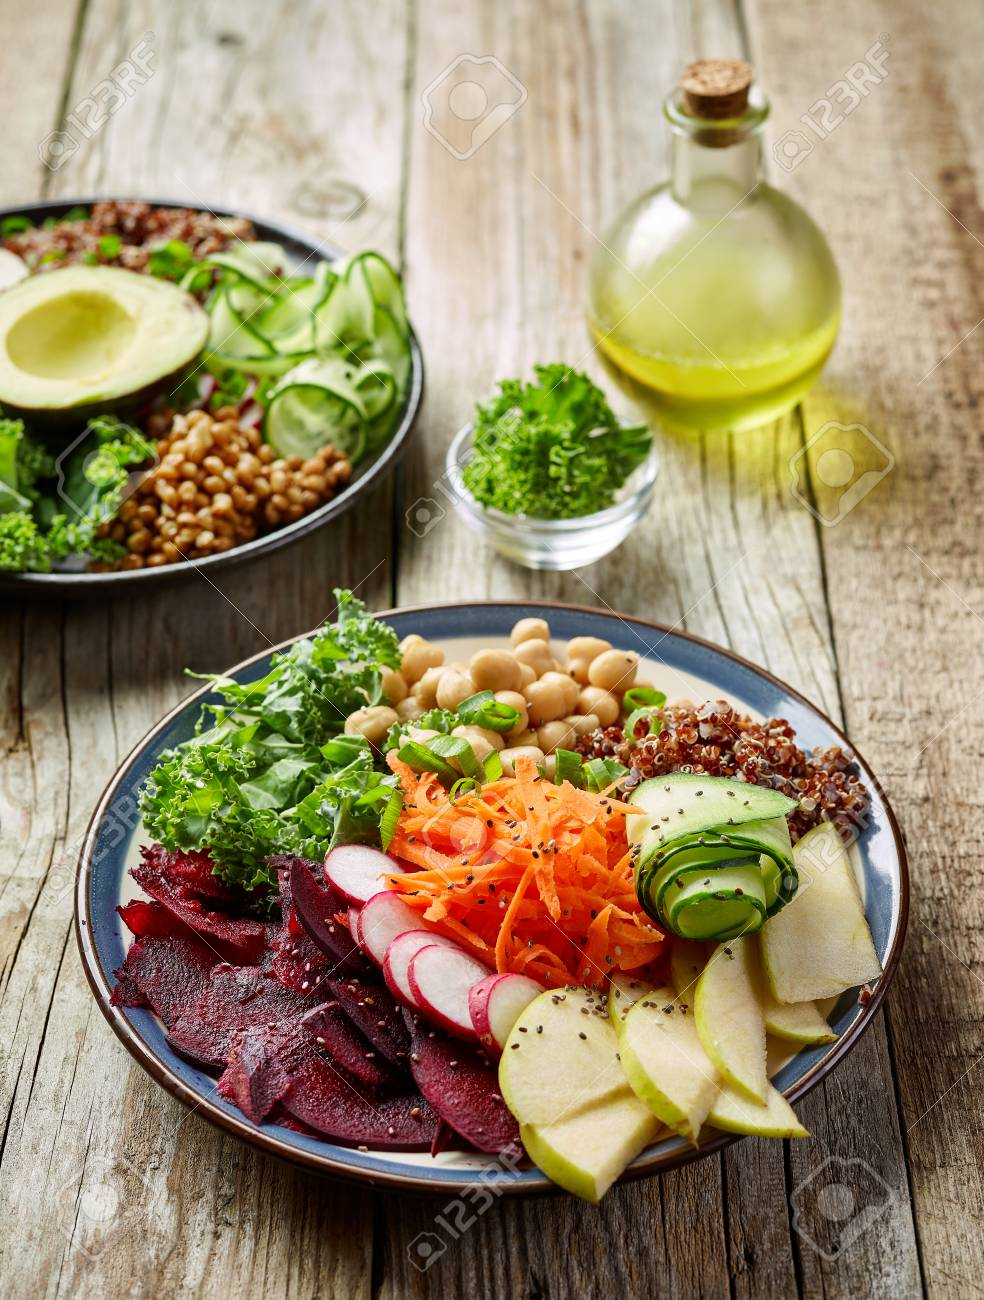 Vegan Breakfast Plates For Healthy Eating On Wooden Table Stock Photo Picture And Royalty Free Image Image 86436328